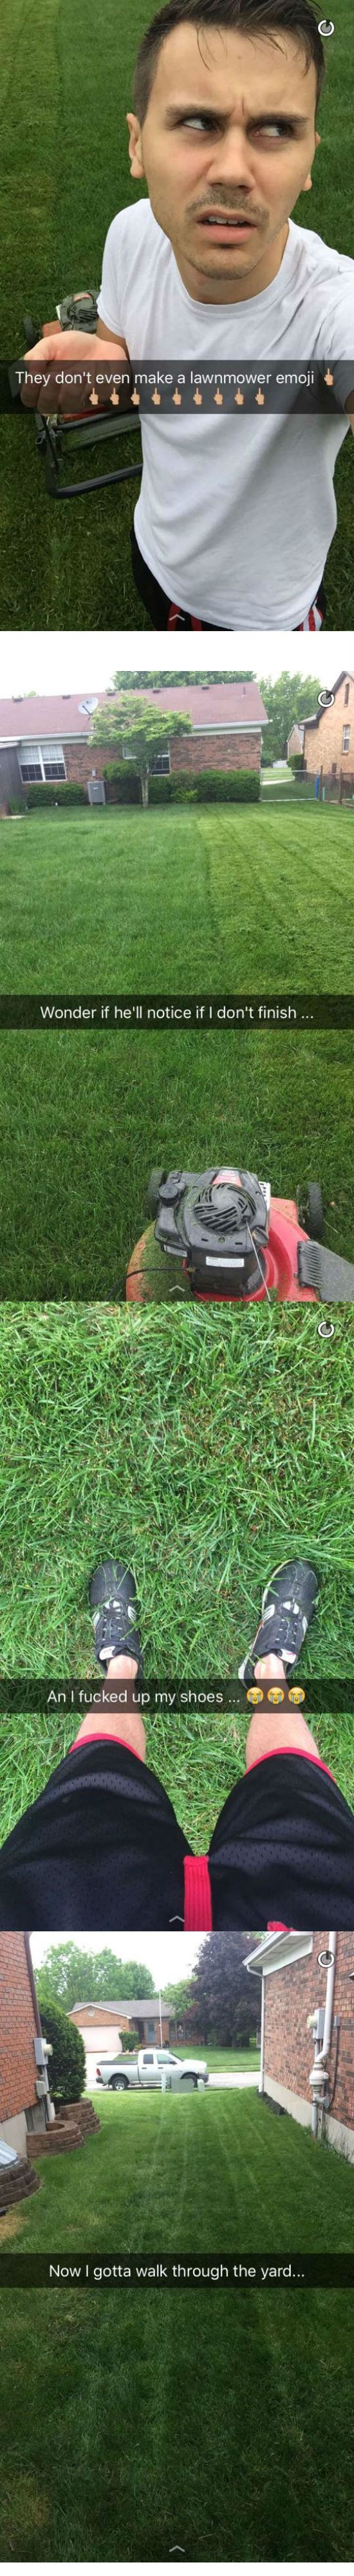 Grass - They don't even make a lawnmower emoji Wonder if he'll notice if I don't finish... An I fucked up my shoes... Now I gotta walk through the yard... E